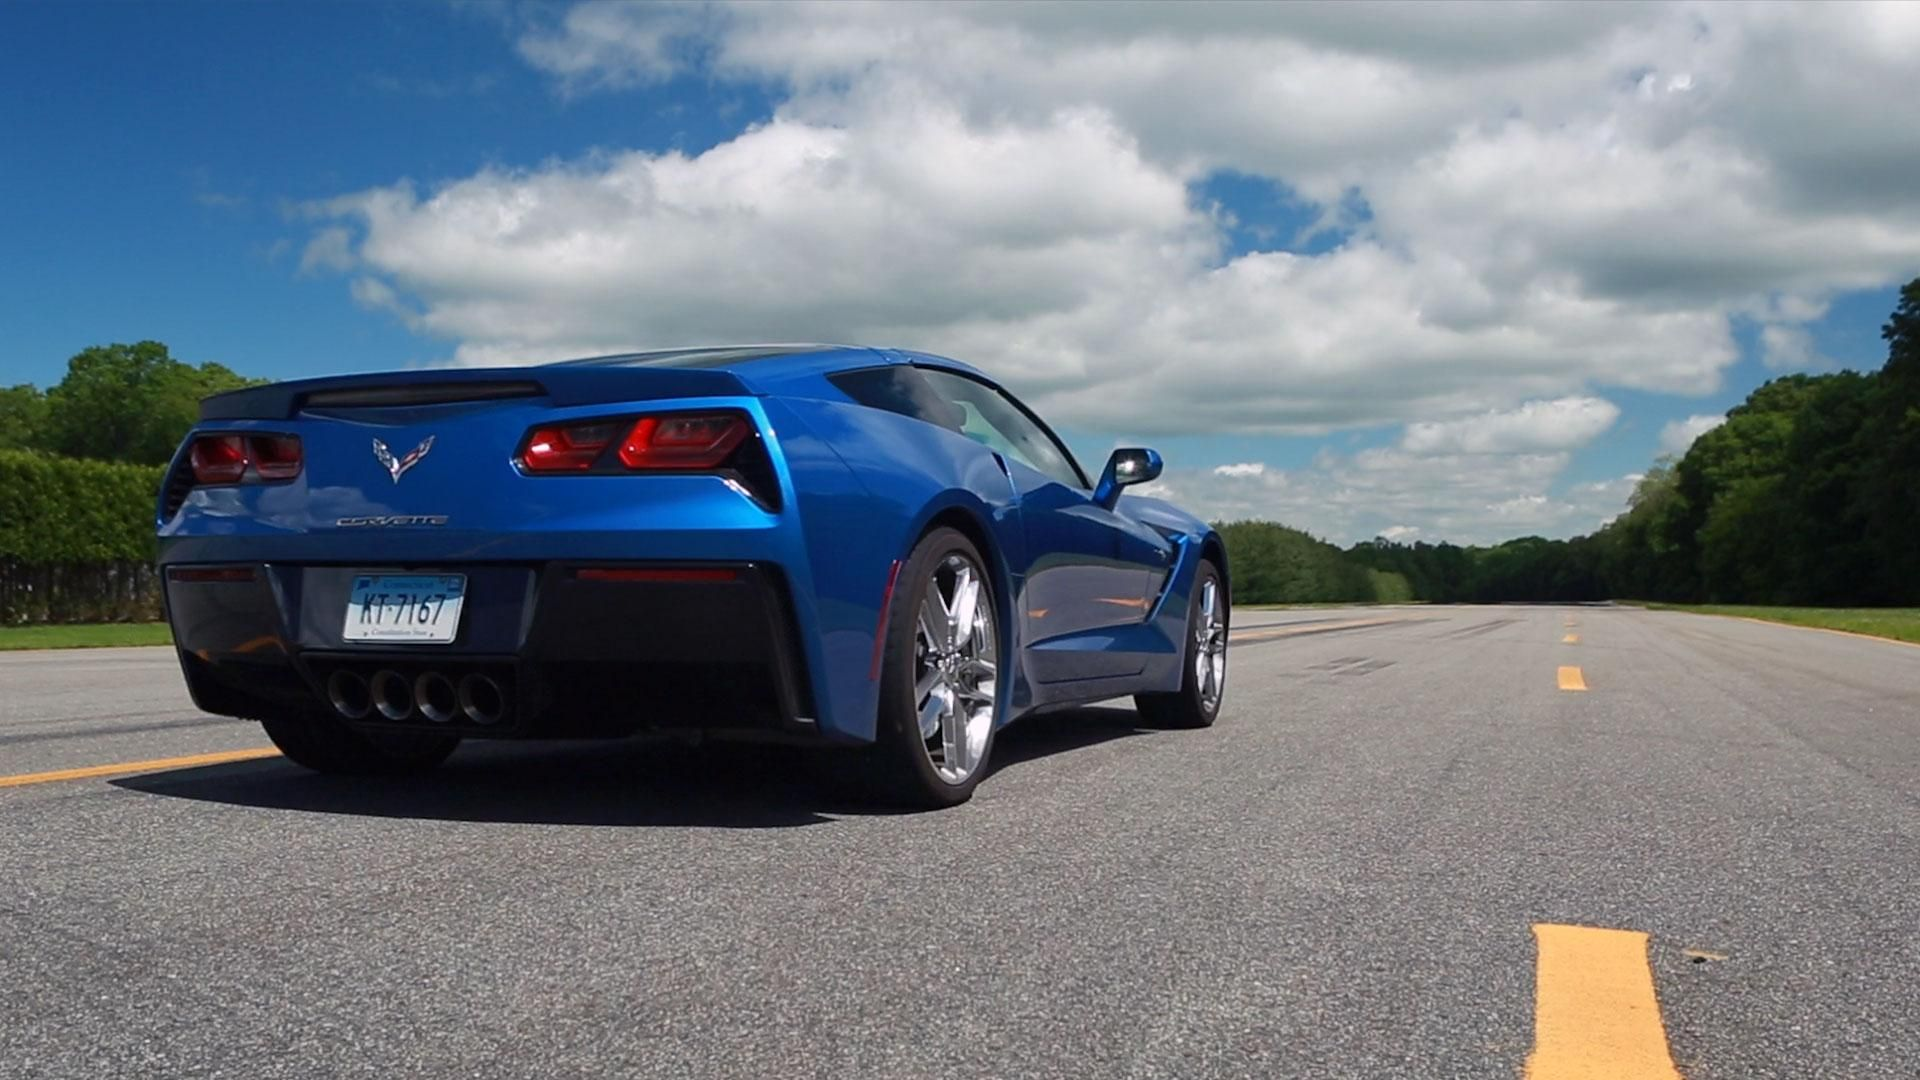 10 Most Satisfying Cars, According to Consumer Reports